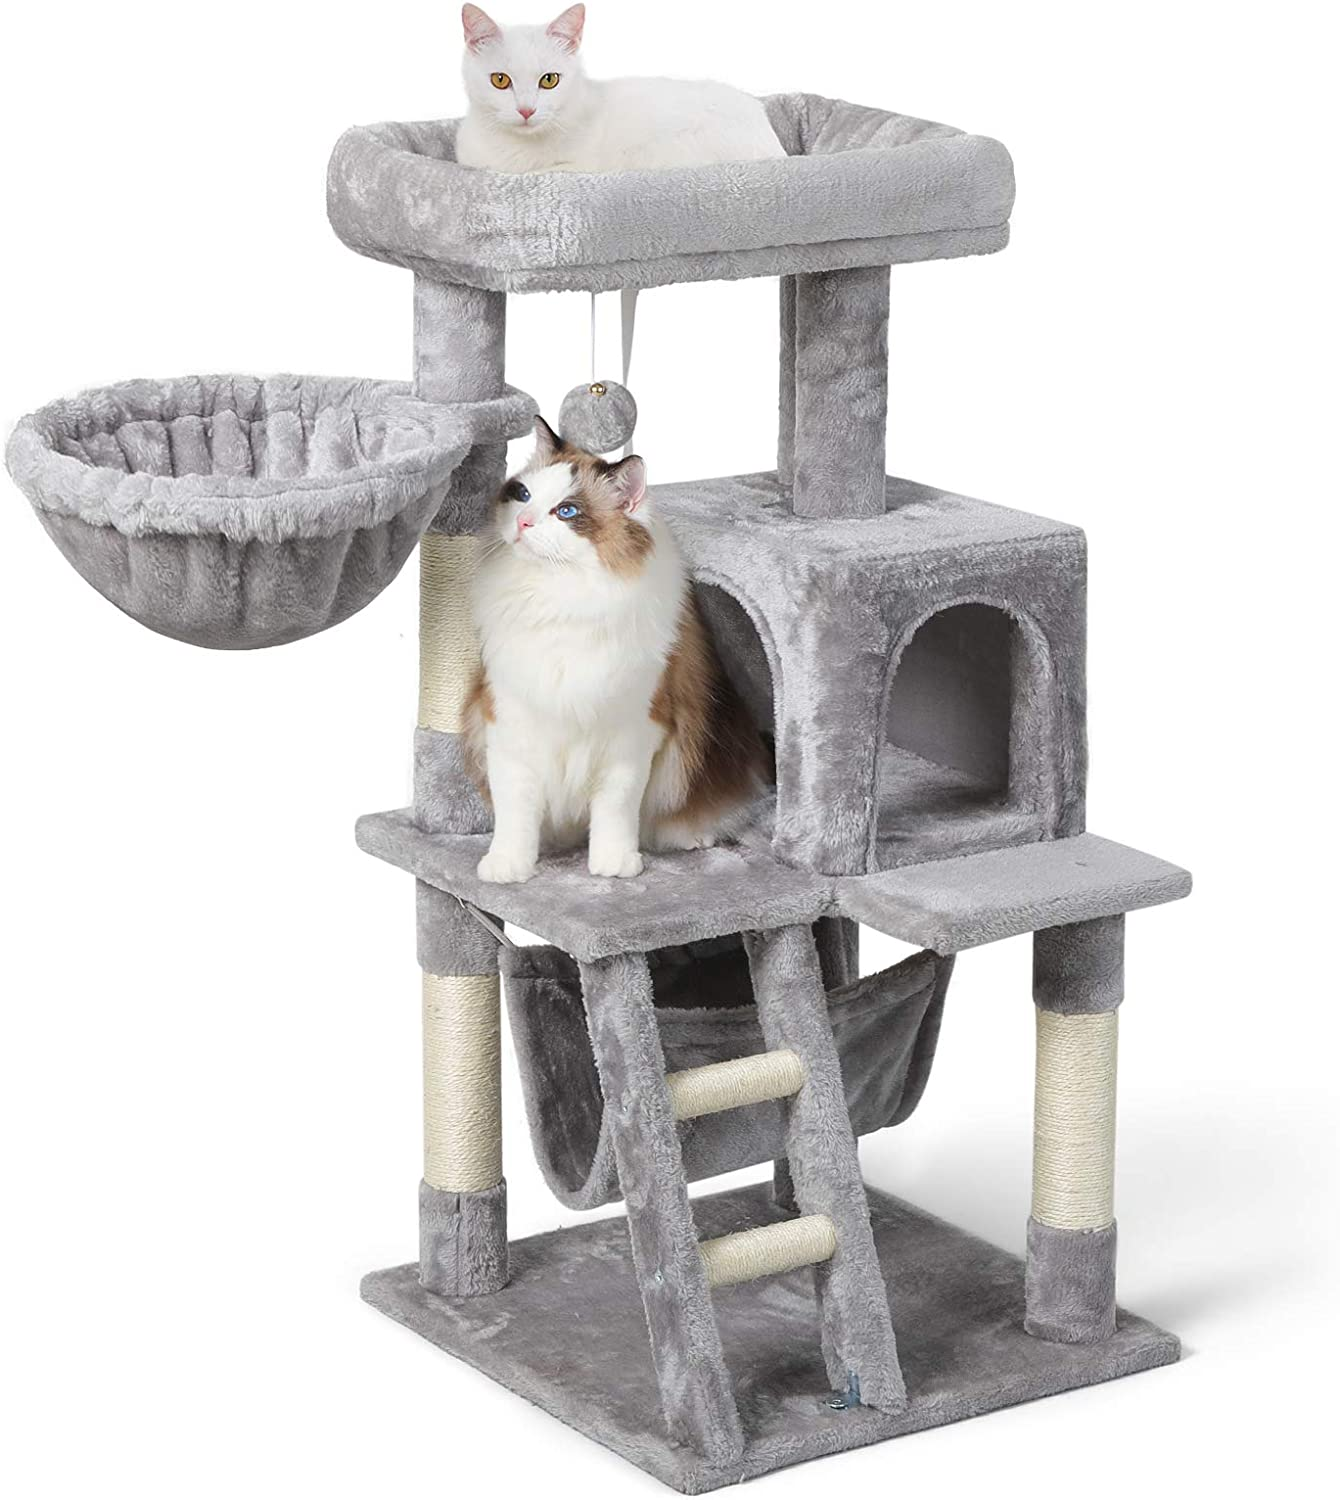 Rabbitgoo Cat Tree 39 Cat Tower For Indoor Cats Multi Level Cat House Condo With Large Perch Scratching Posts Hammock Cat Climbing Stand With Toy For Medium Small Kittens Play